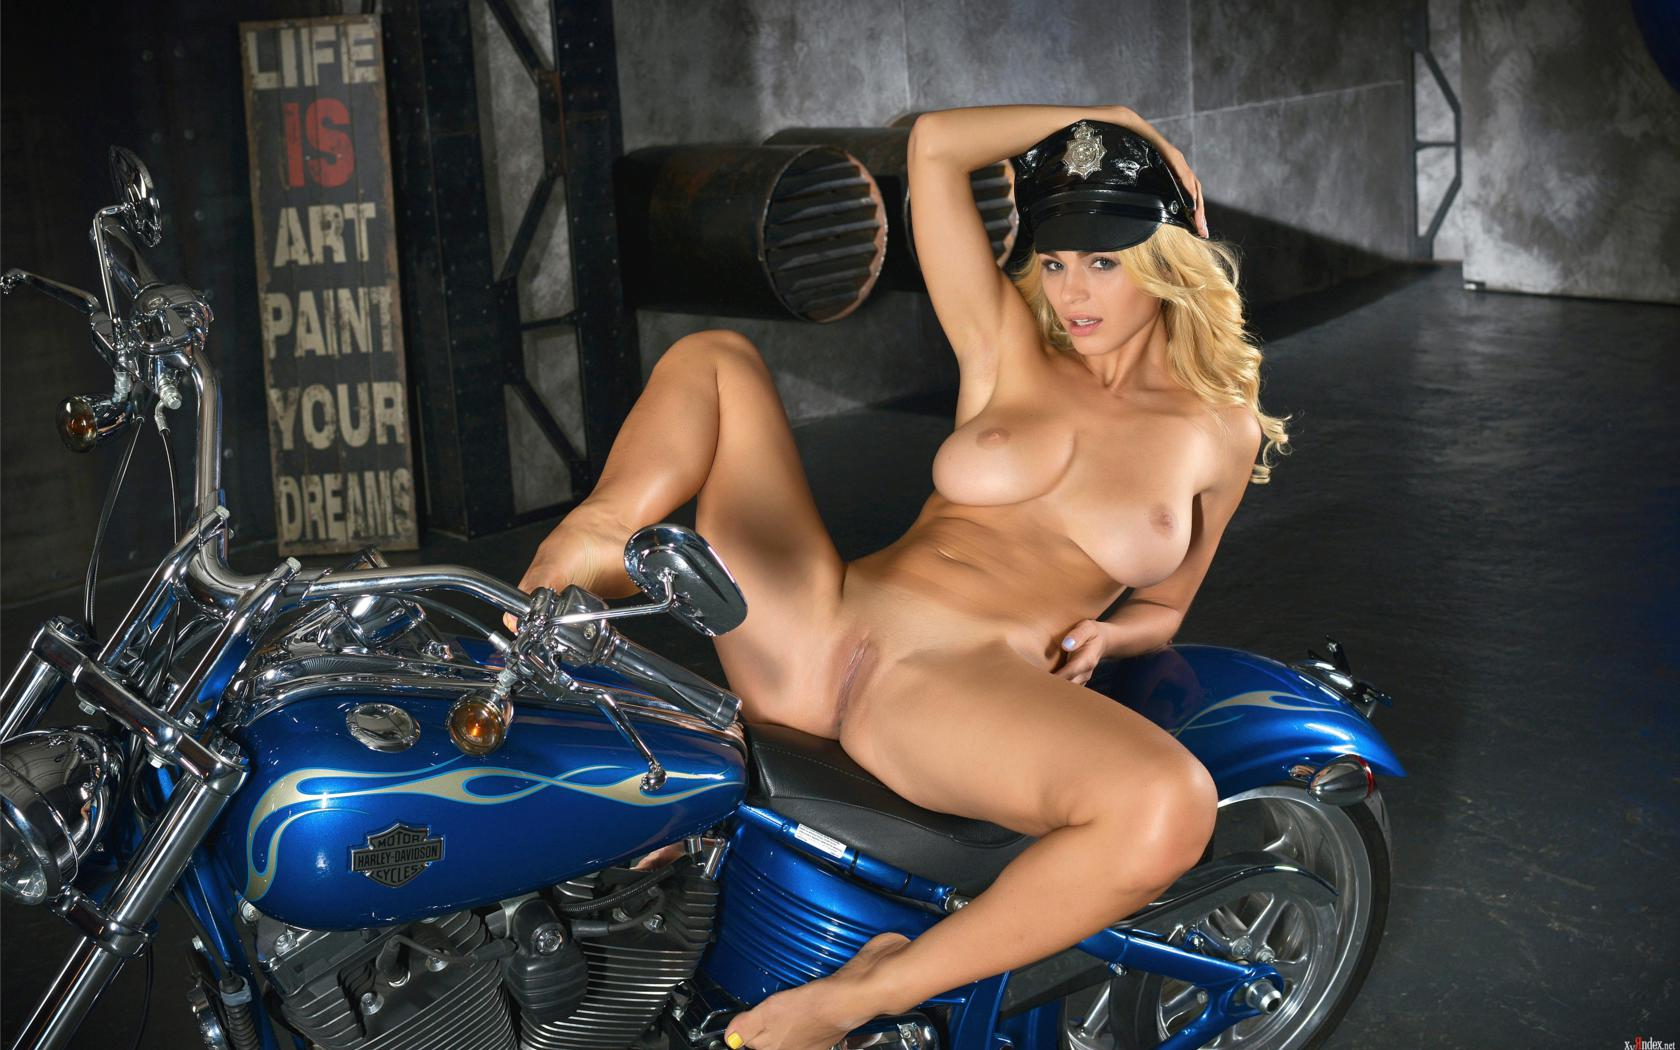 The Girls nude on bikes spread are